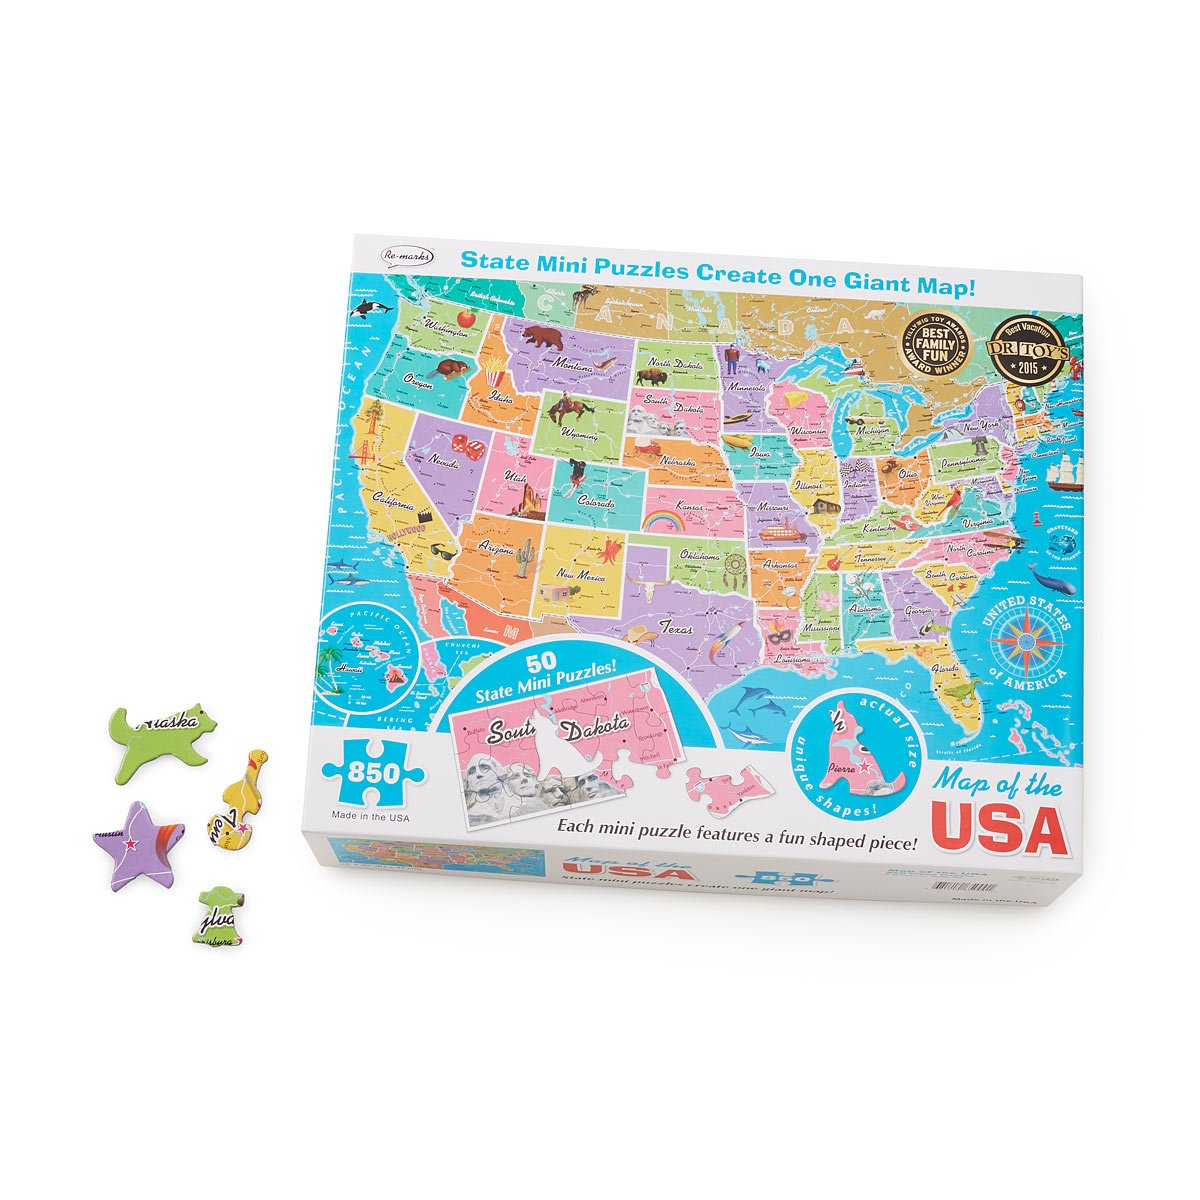 States Puzzle Within A Puzzle Map Of USA States US Map - Us states map puzzle game